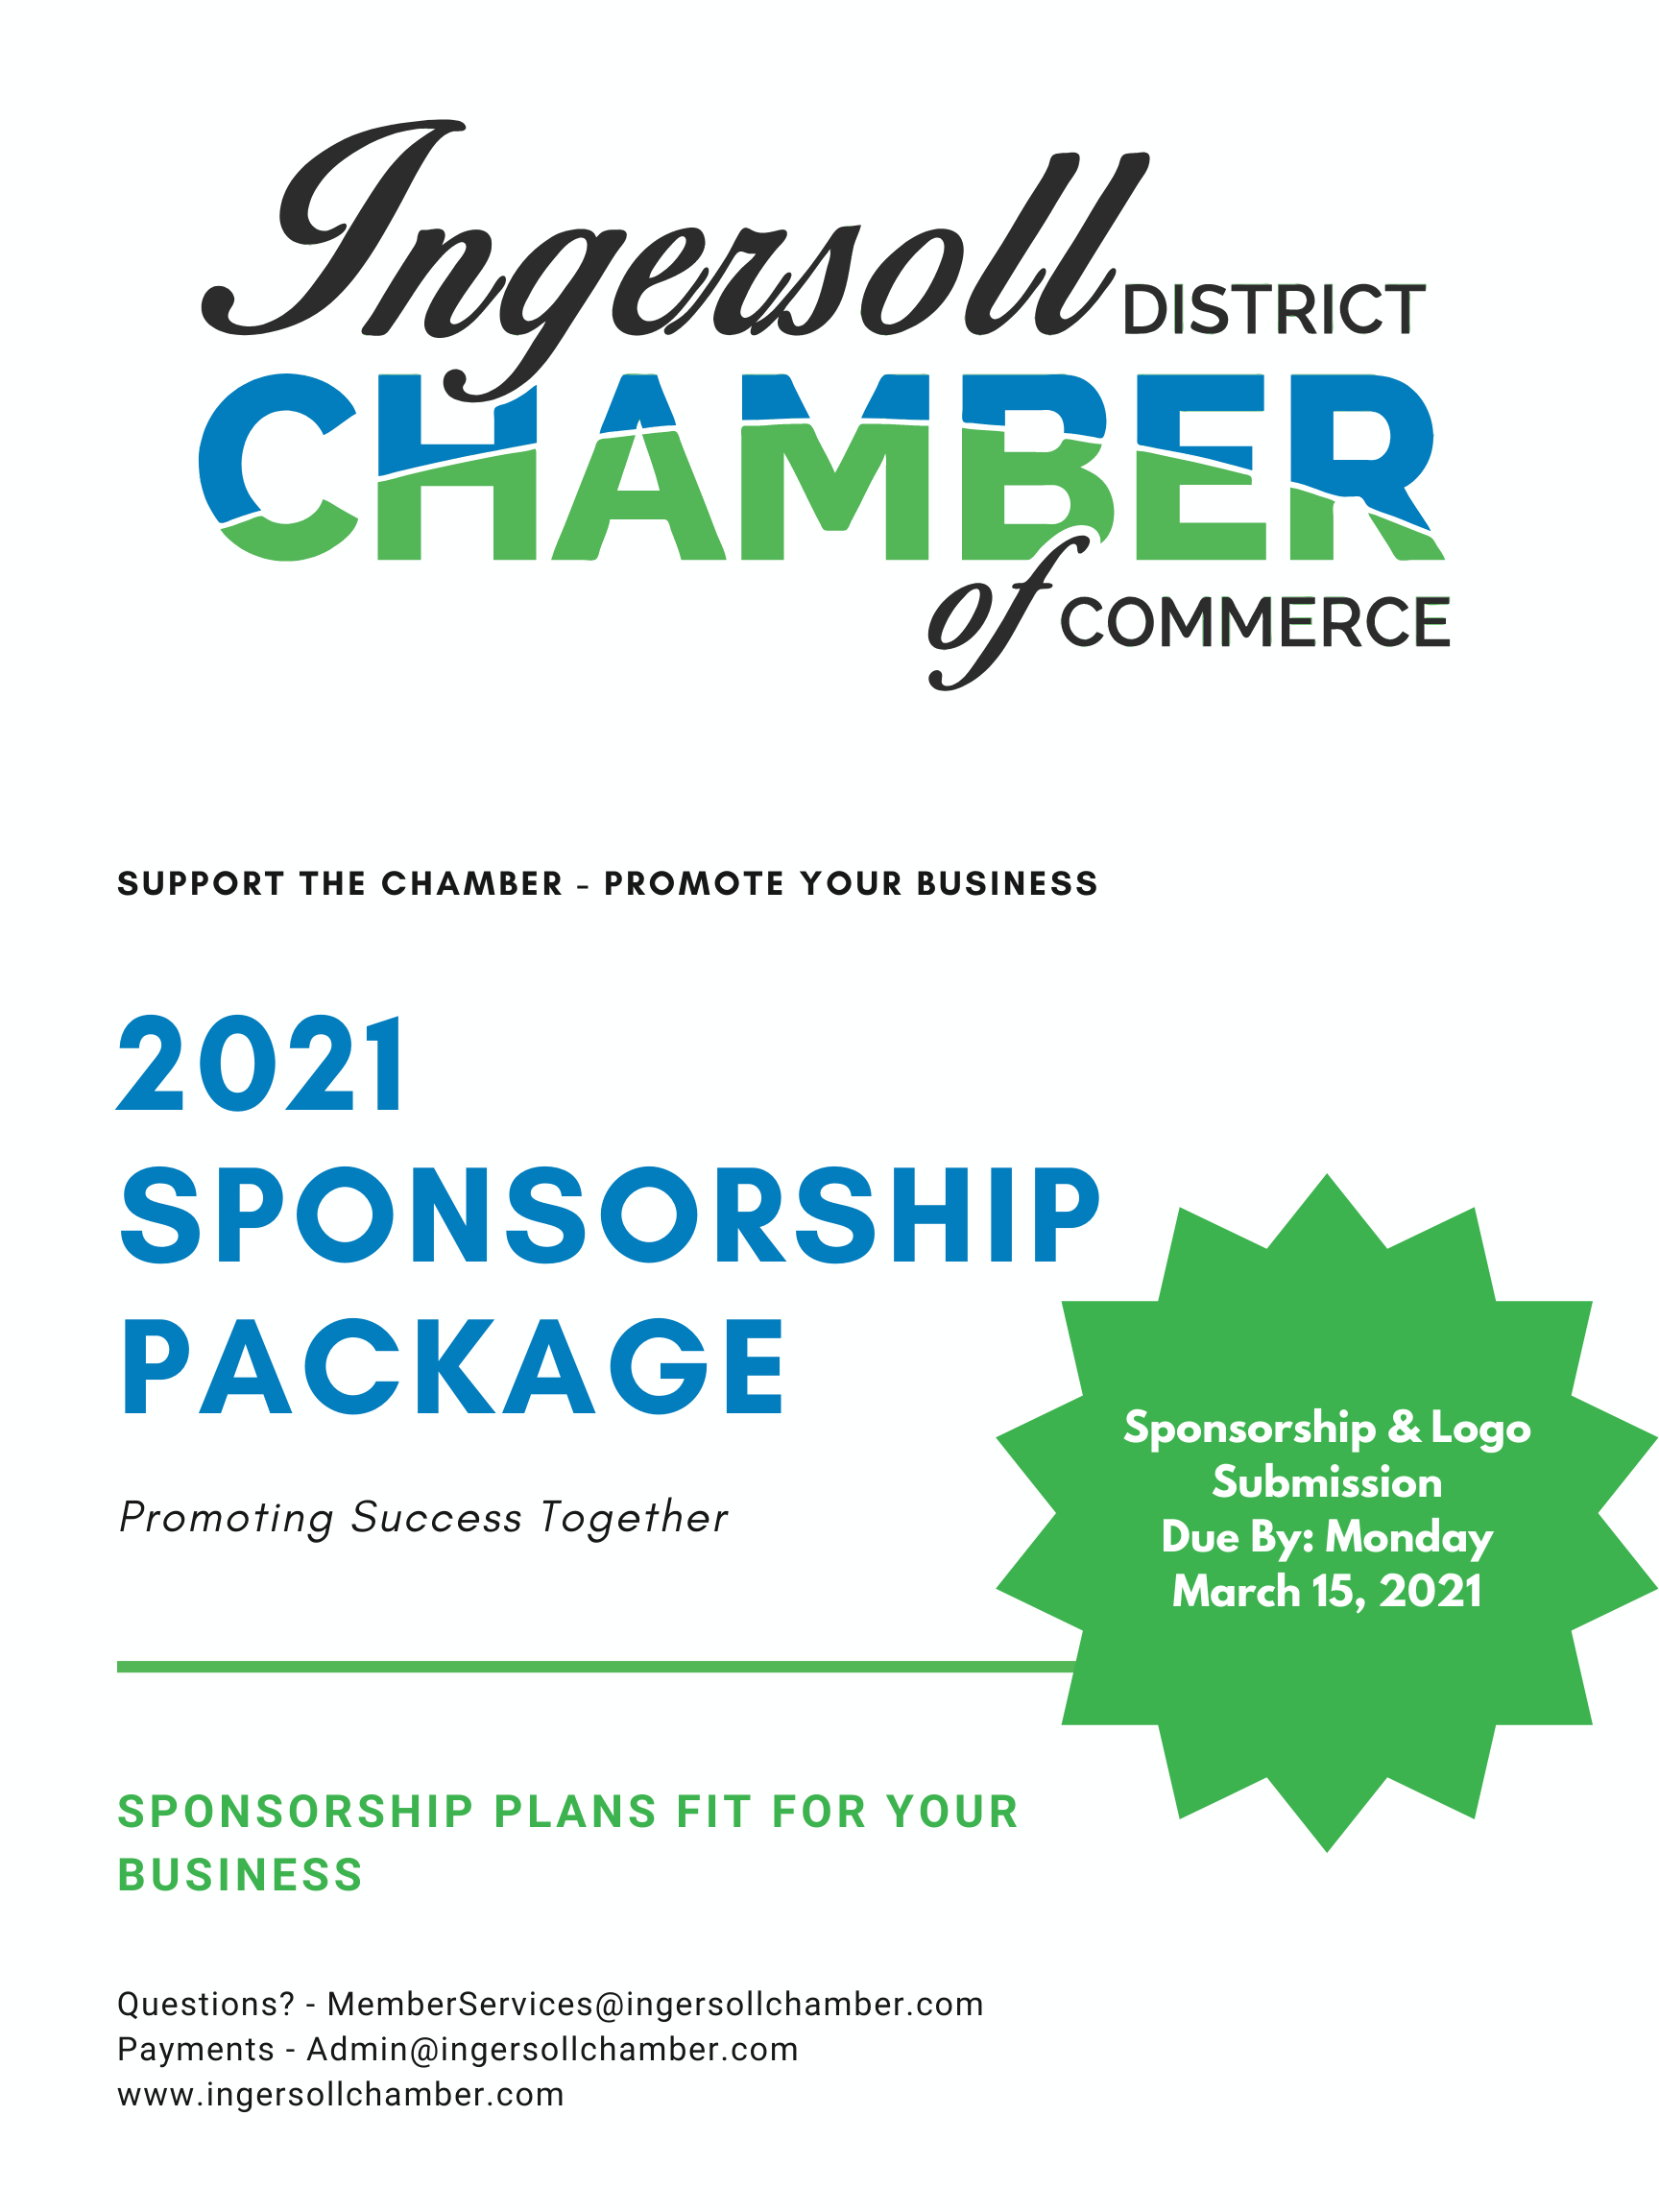 2021 Sponsorship Title Page - This page explains that sponsorships are due by March 15, 2021 and is primarily decorative